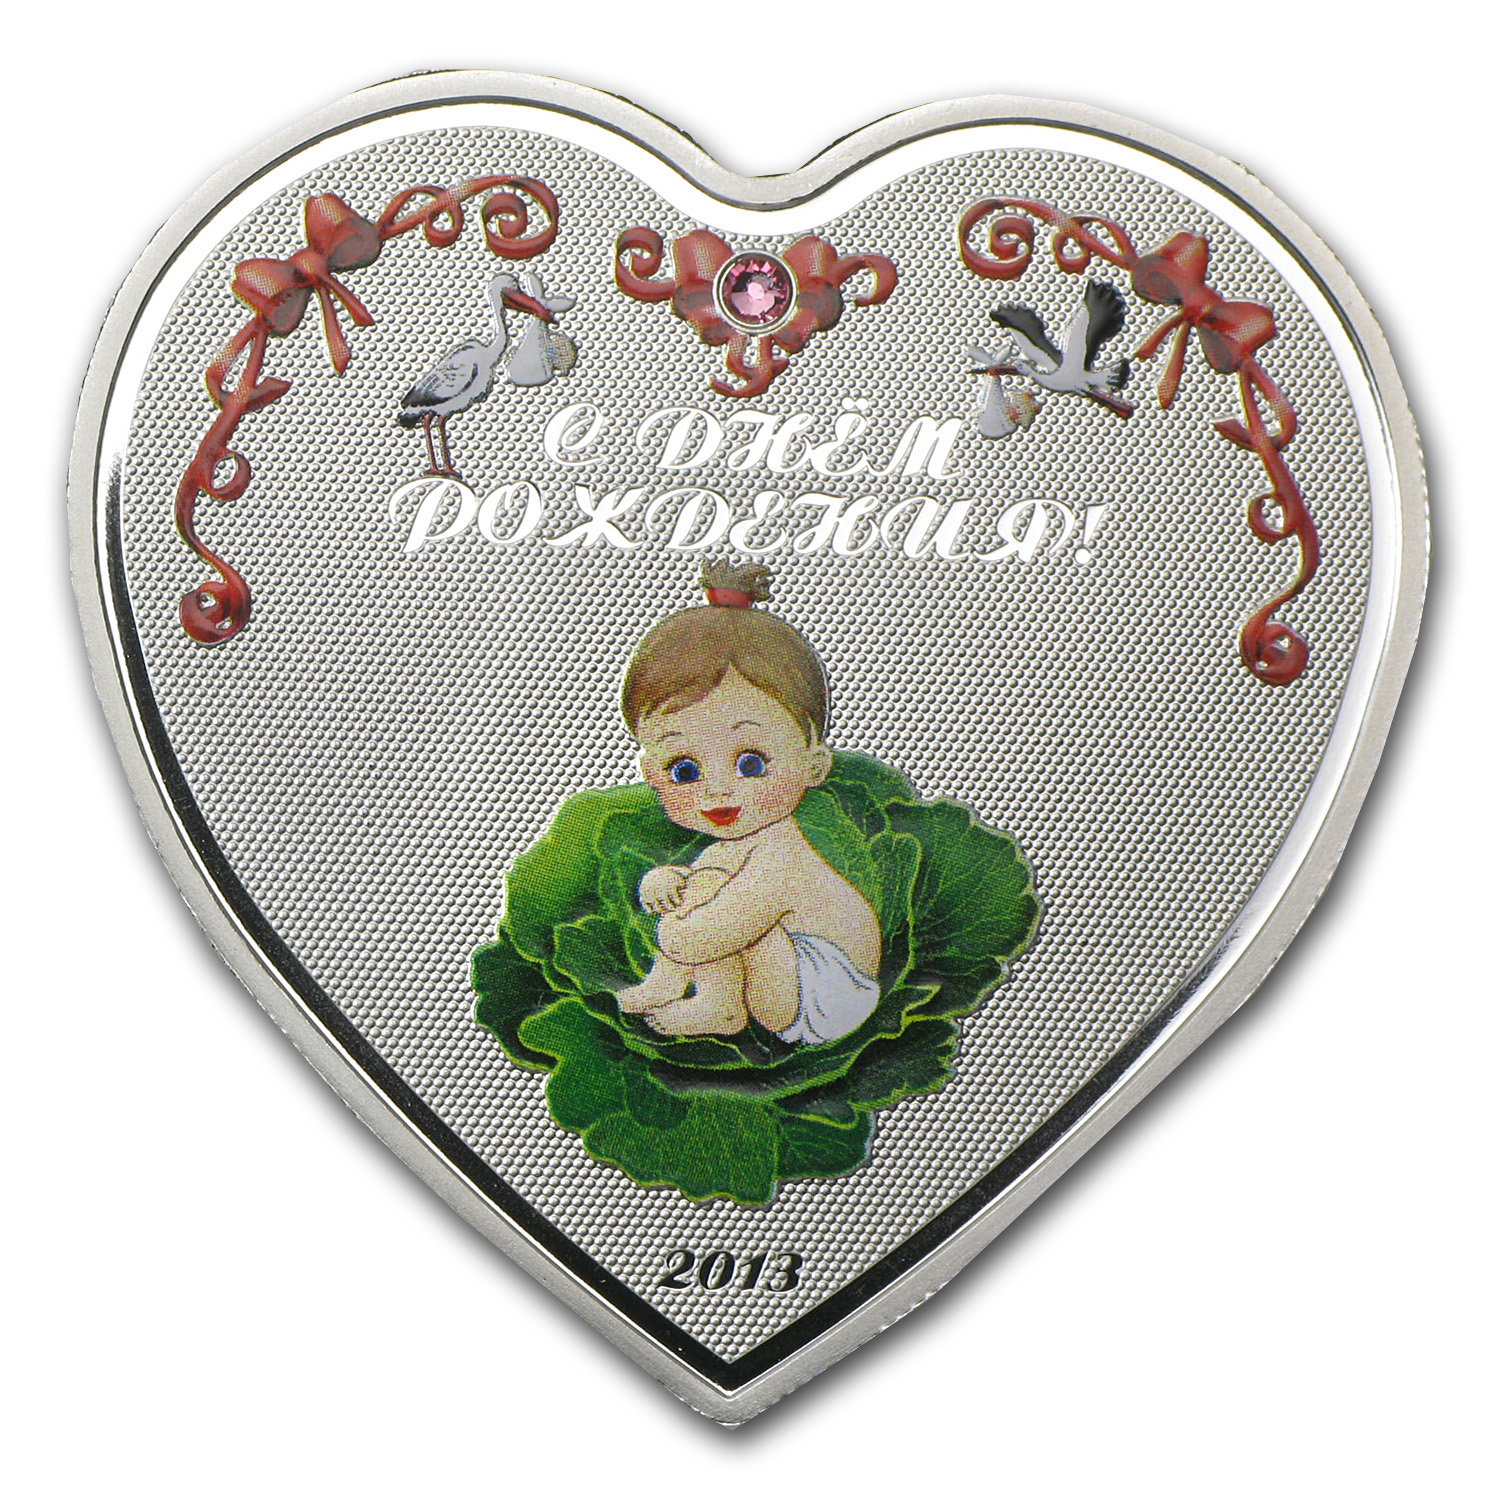 Cook Islands 2013 Proof Silver $2 Birthday Heart - Girl